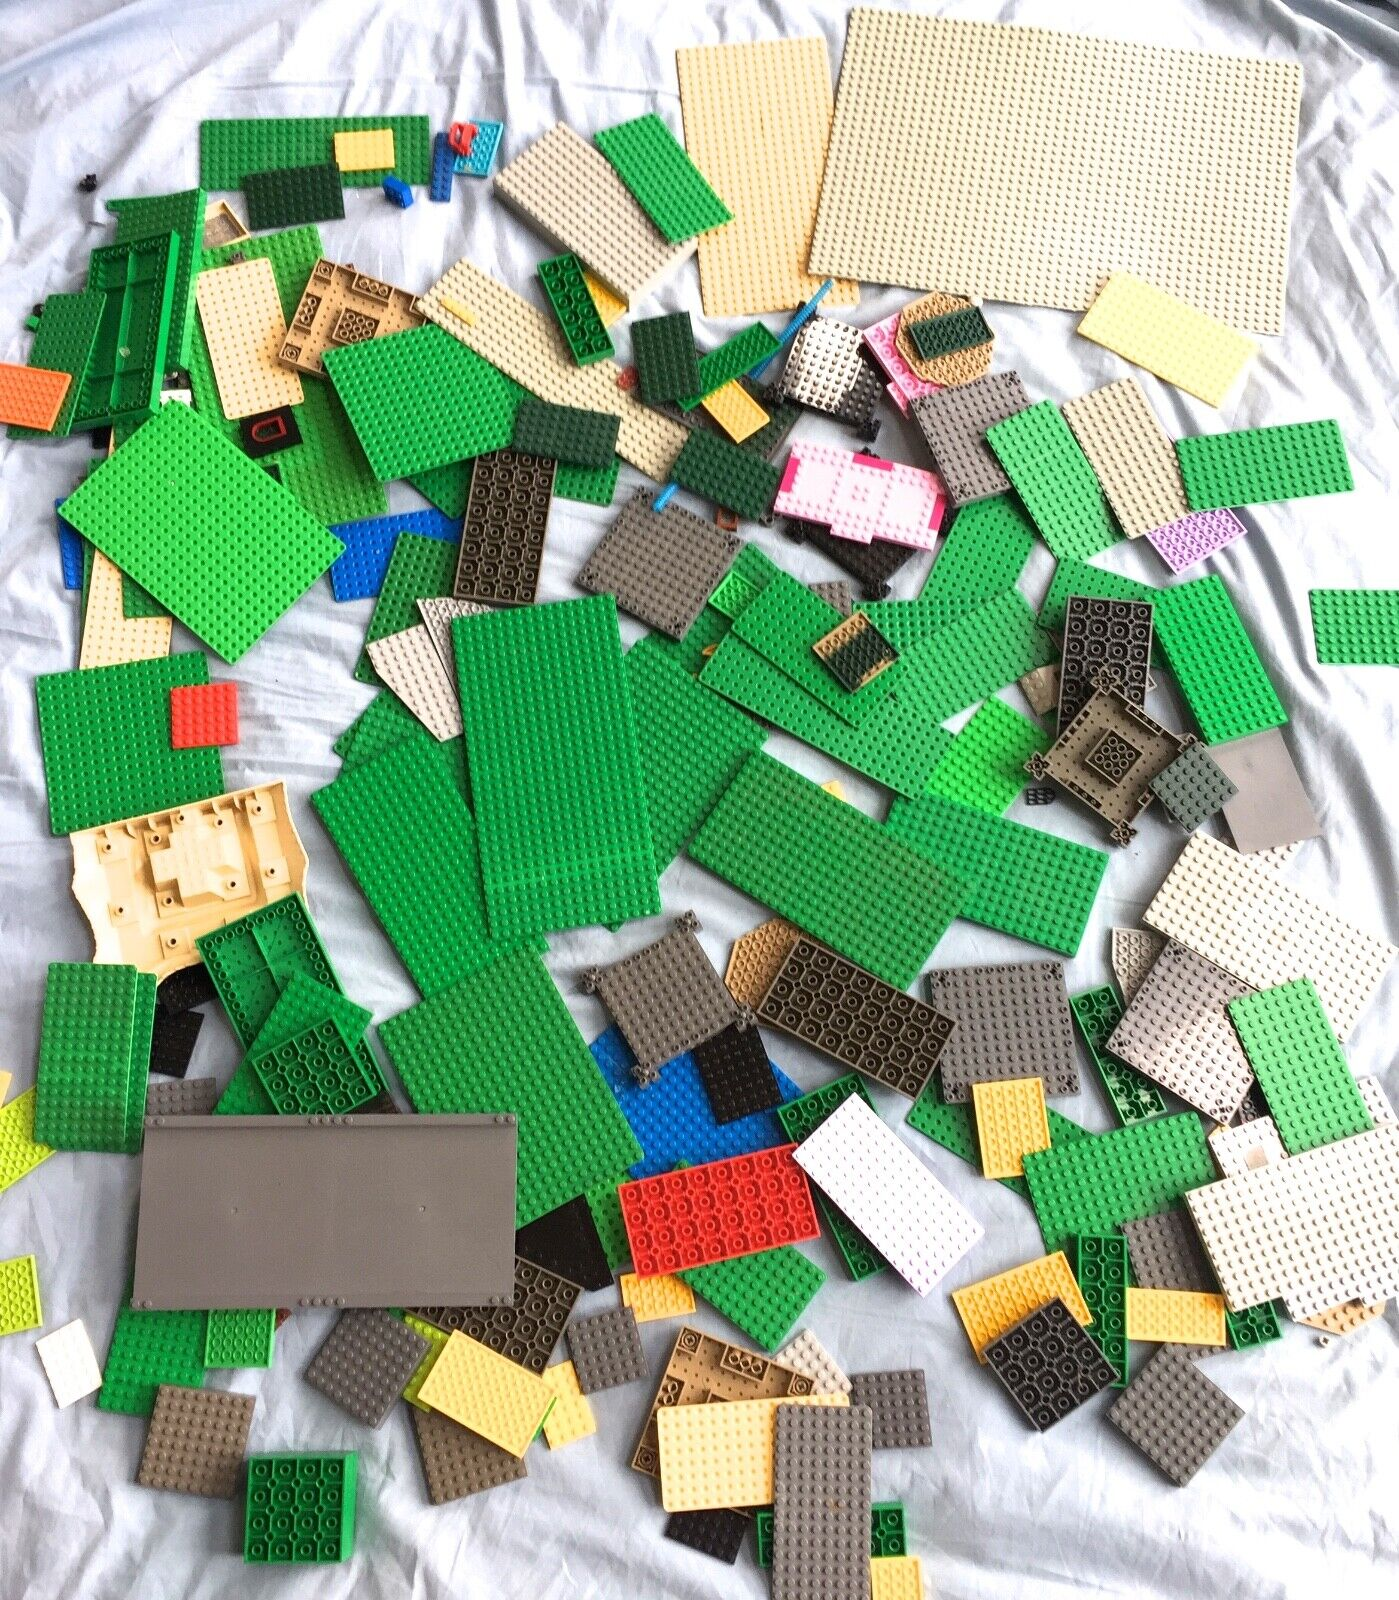 LEGO HUGE 7 POUND Masse OF PLATES TOWN BASEPLATE PARTS MIXED VARIETY BASE PIECES